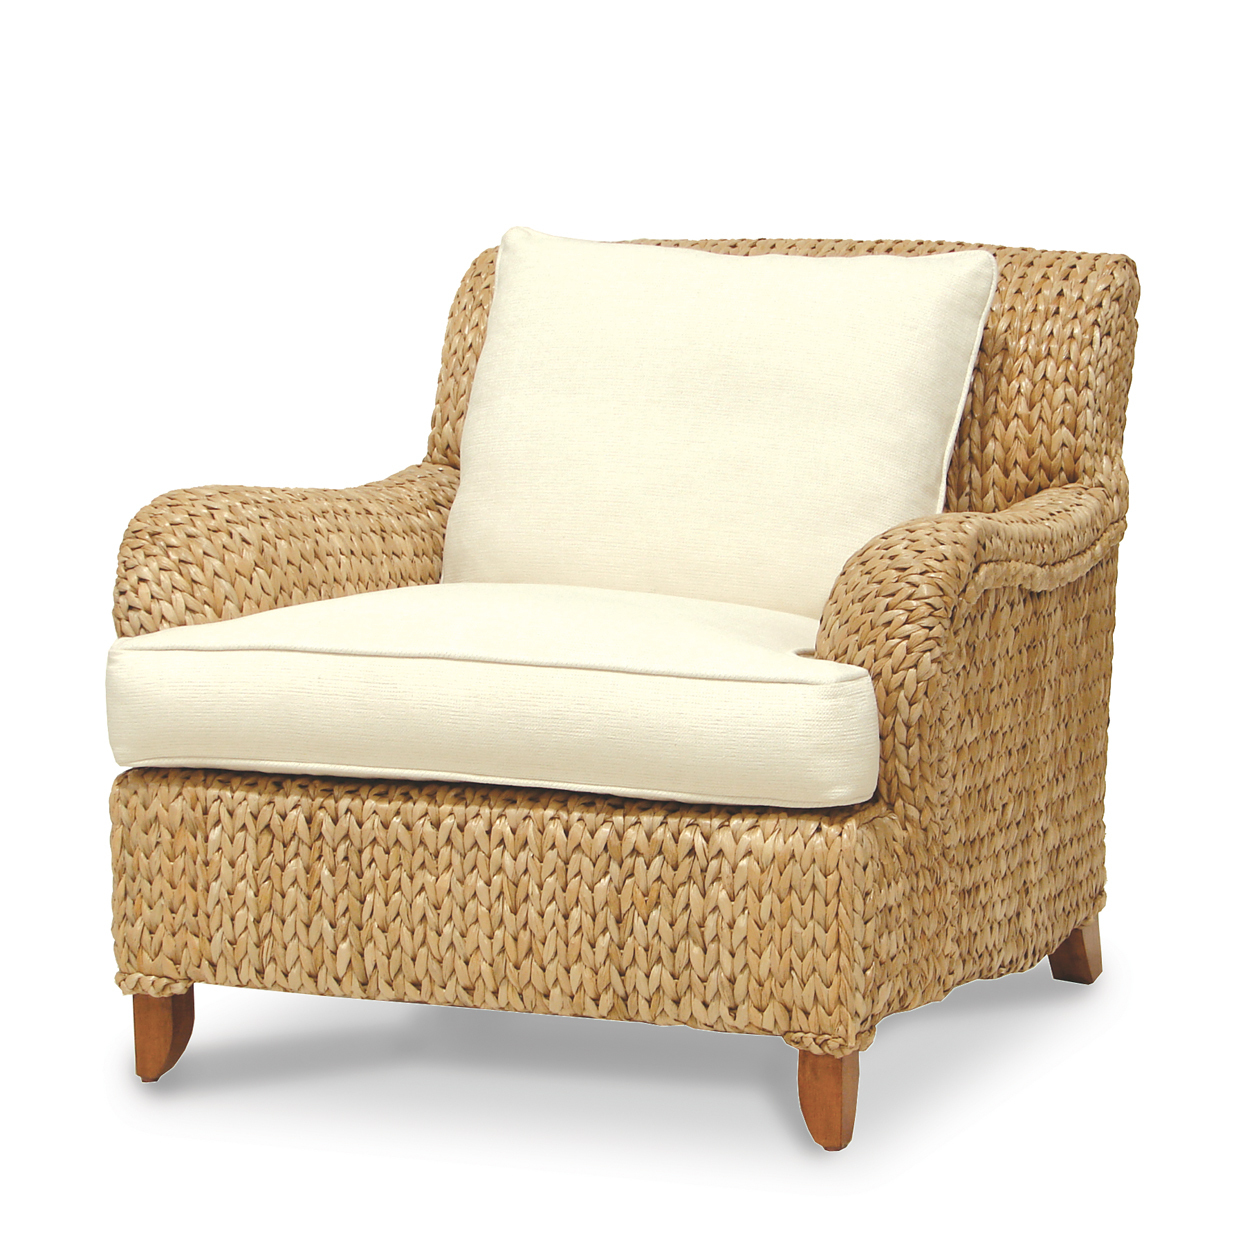 sea grass chairs swivel chair keeps going up seagrass armchair sweater weave lounge www